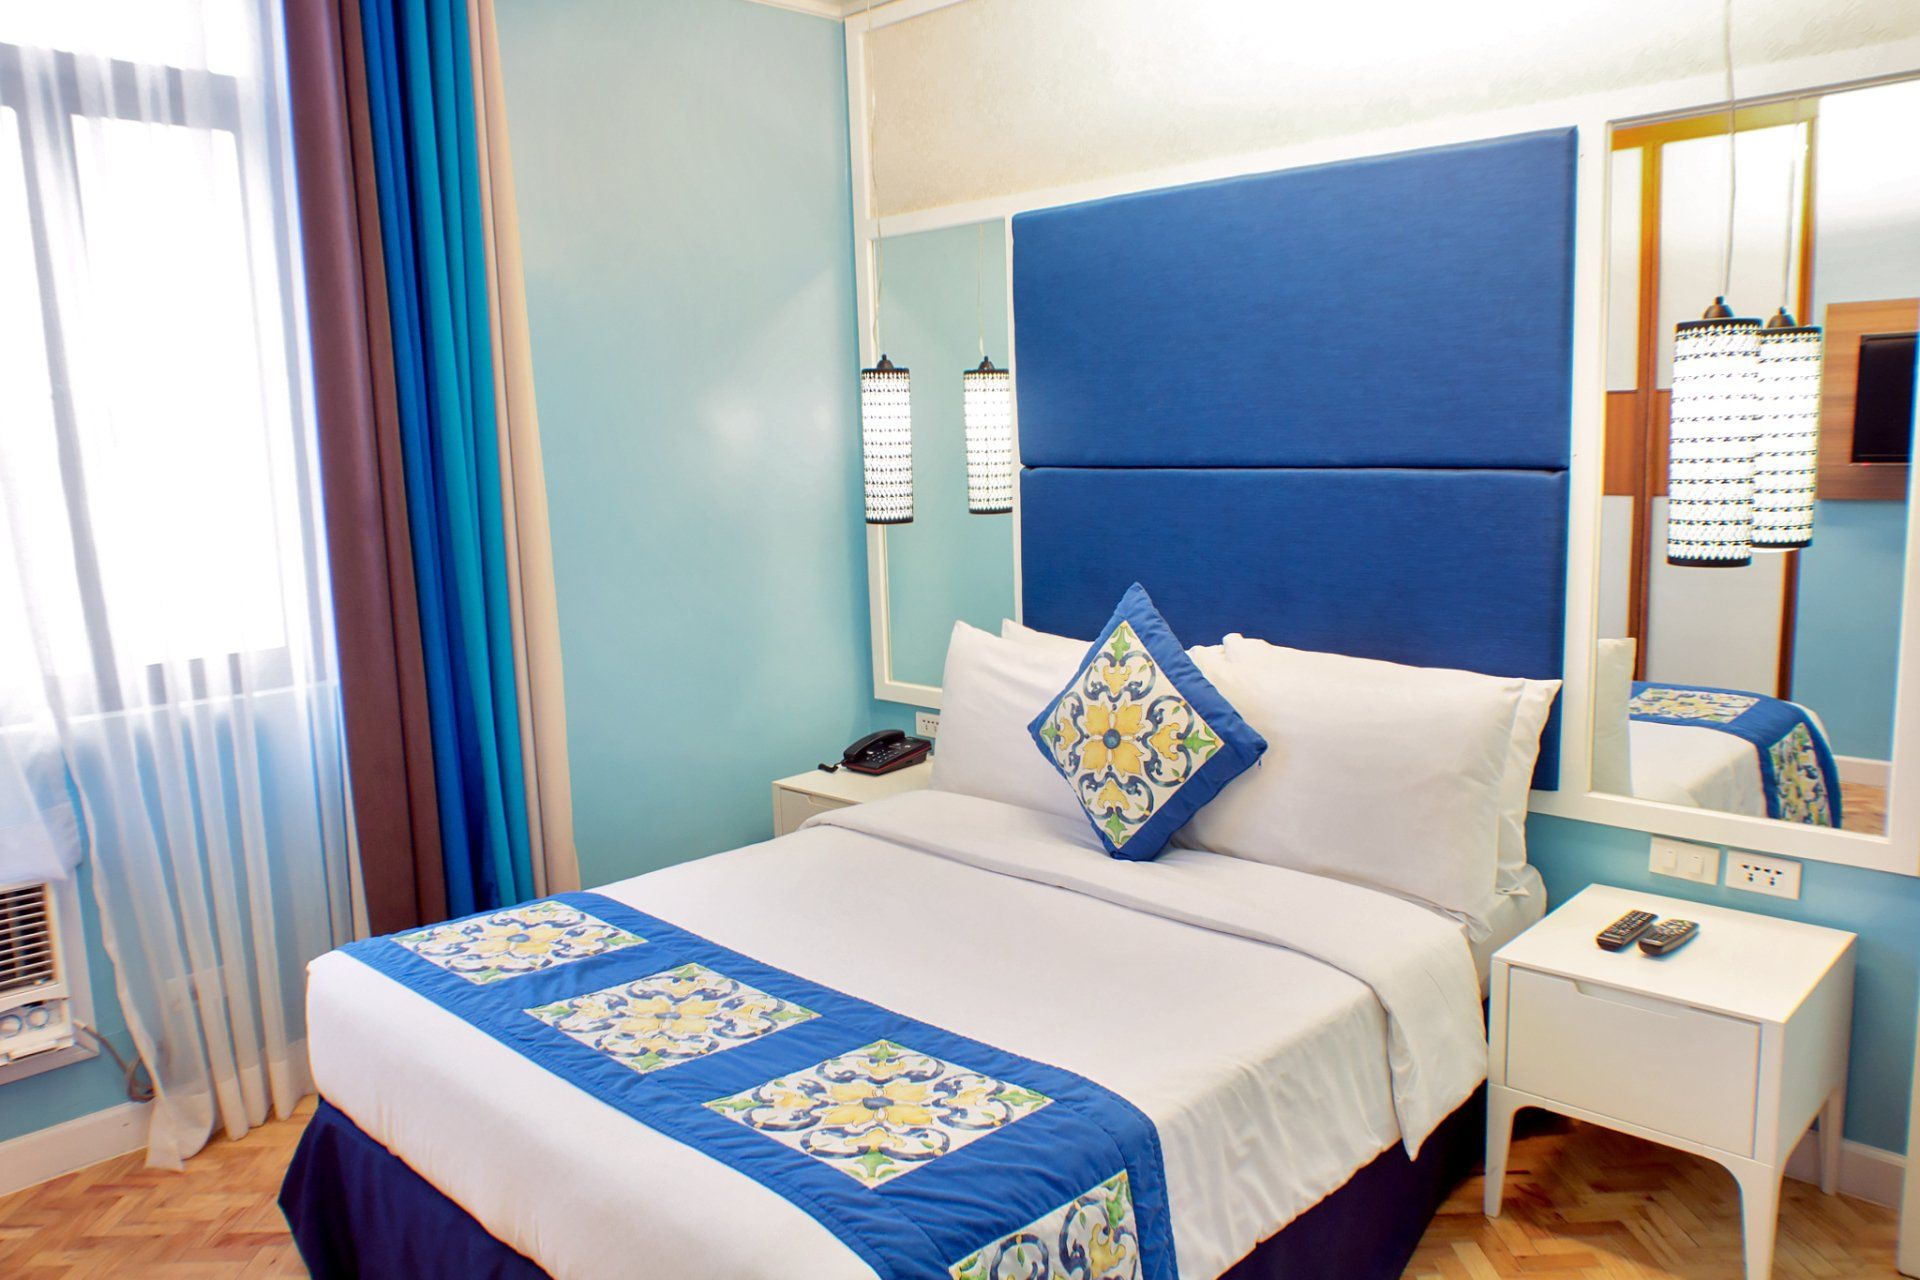 Colorful walls and bed accessories inside a room in Parque Espana